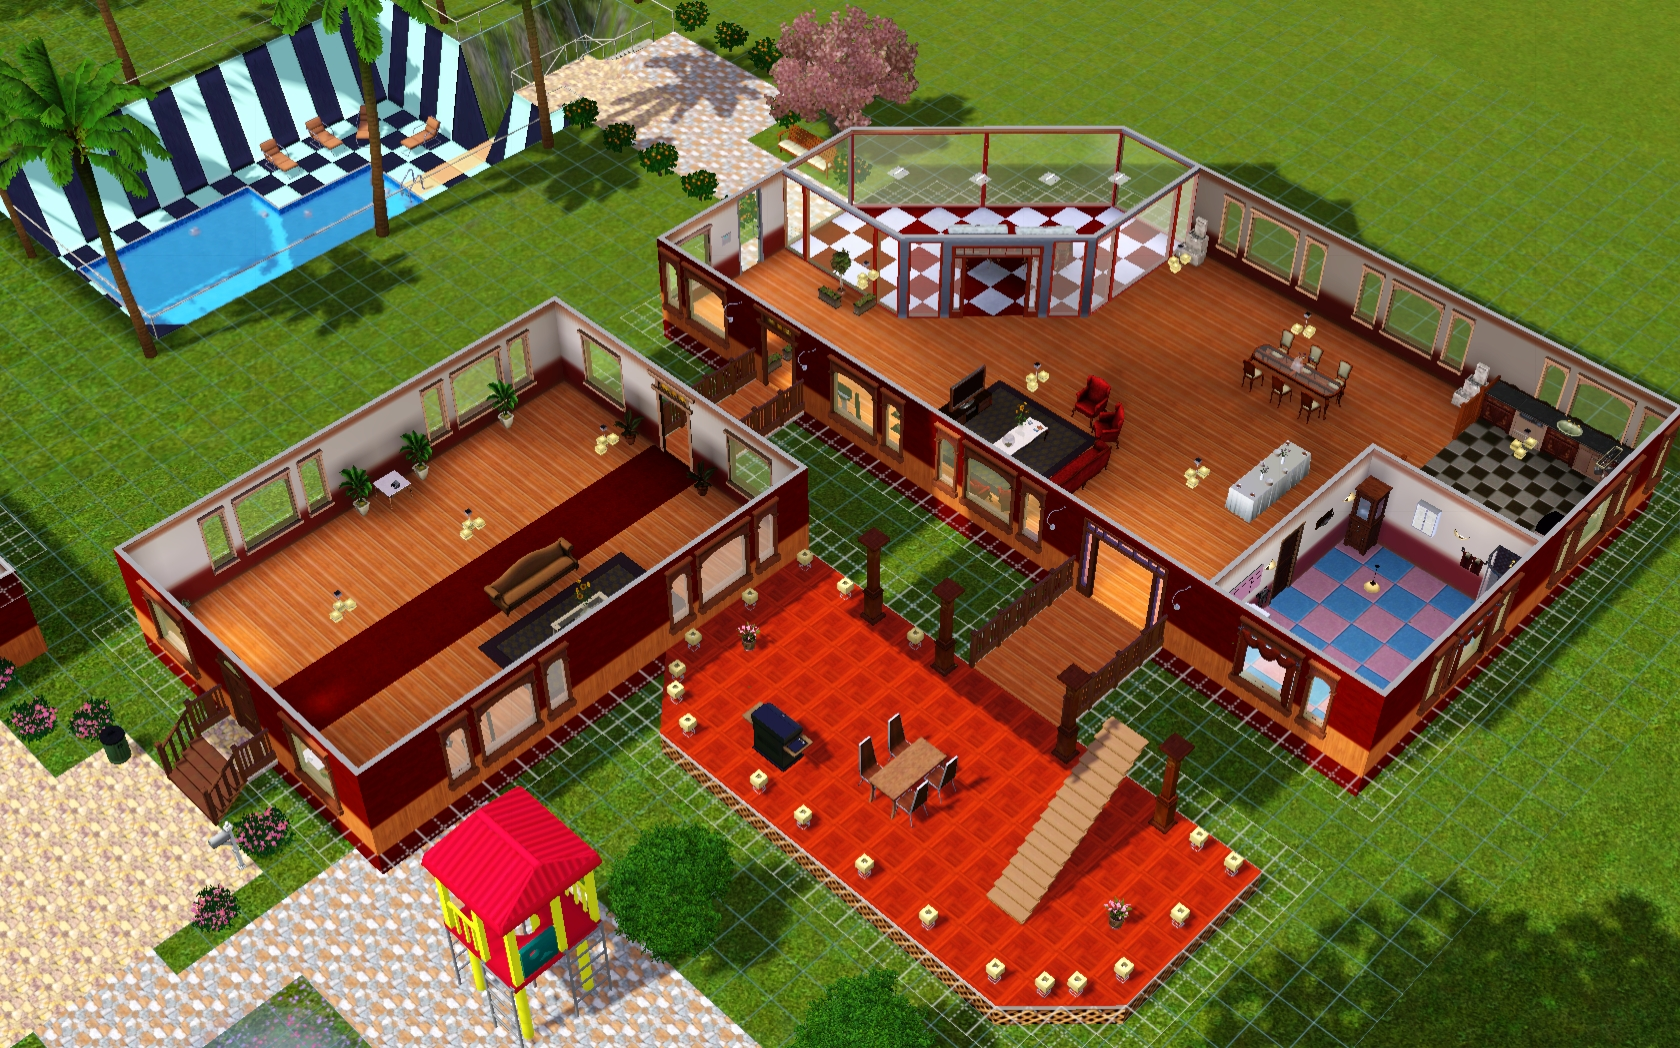 villa fantastico das gro e sims 3 forum von und f r fans. Black Bedroom Furniture Sets. Home Design Ideas